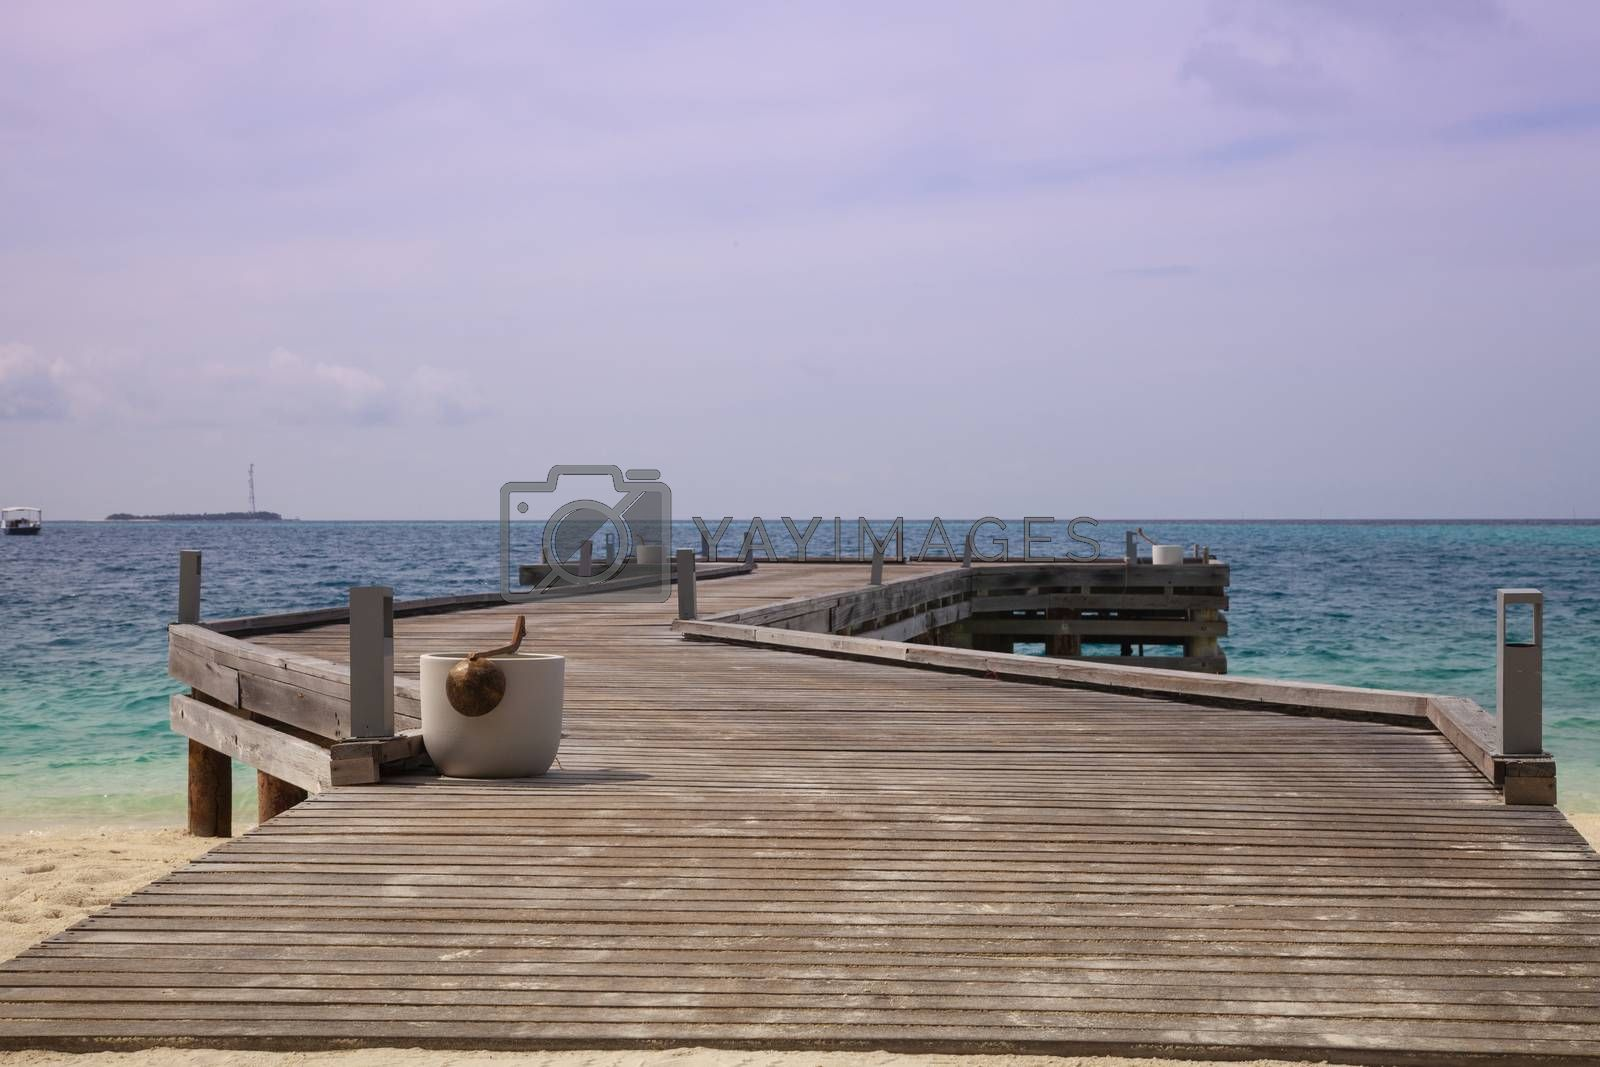 wooden bridge in the Maldives, goes out to sea by maselkoo99